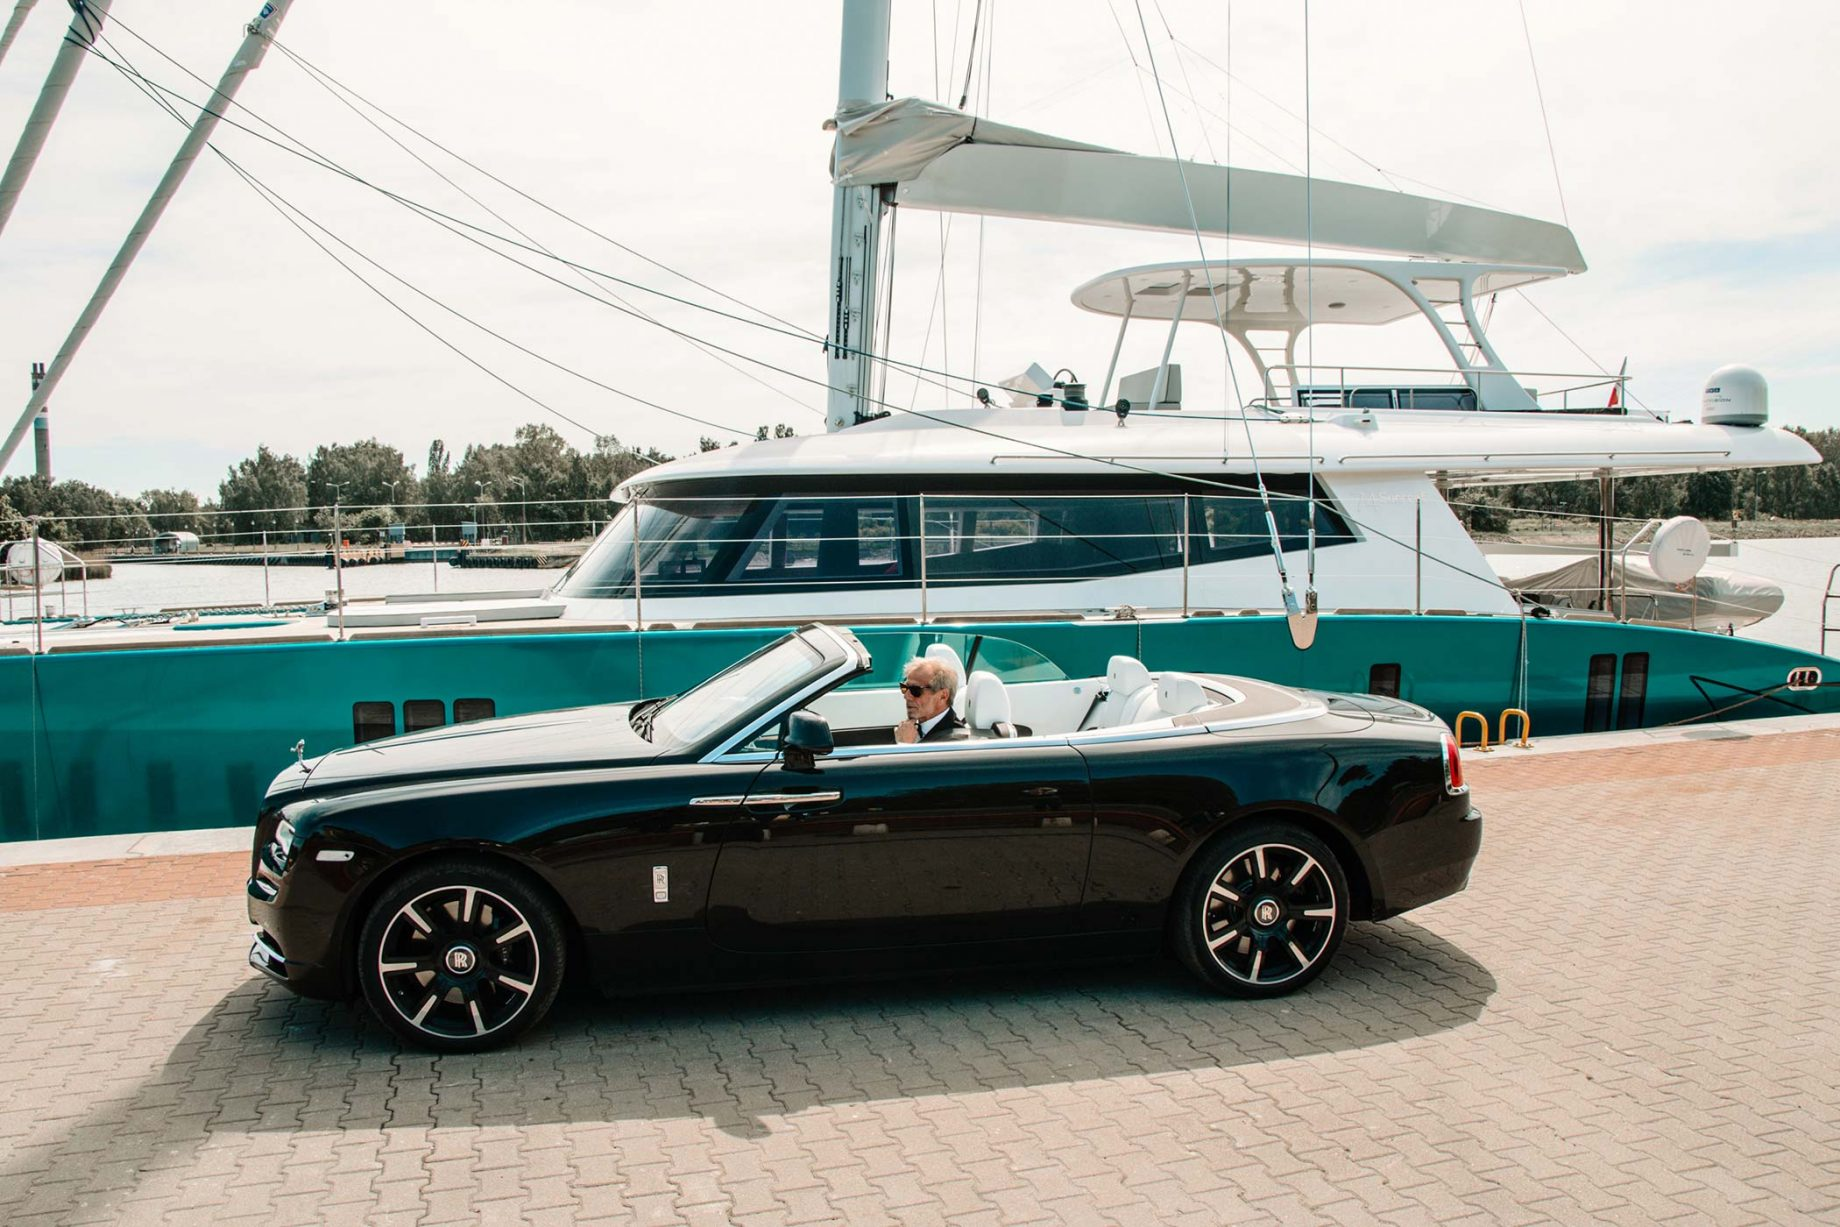 Rolls Royce Dawn i Sunreef